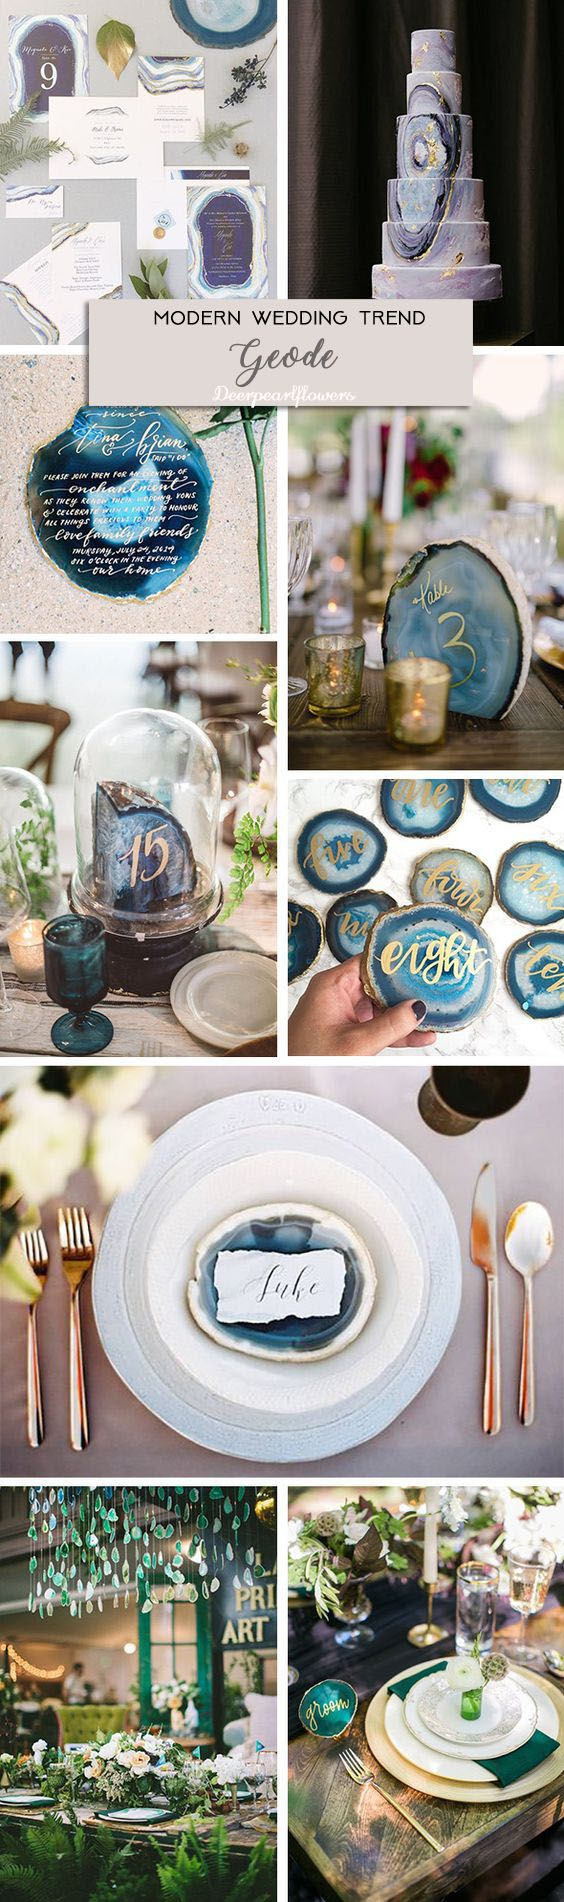 agate gem stone wedding ideas / http://www.deerpearlflowers.com/modern-wedding-theme-ideas/